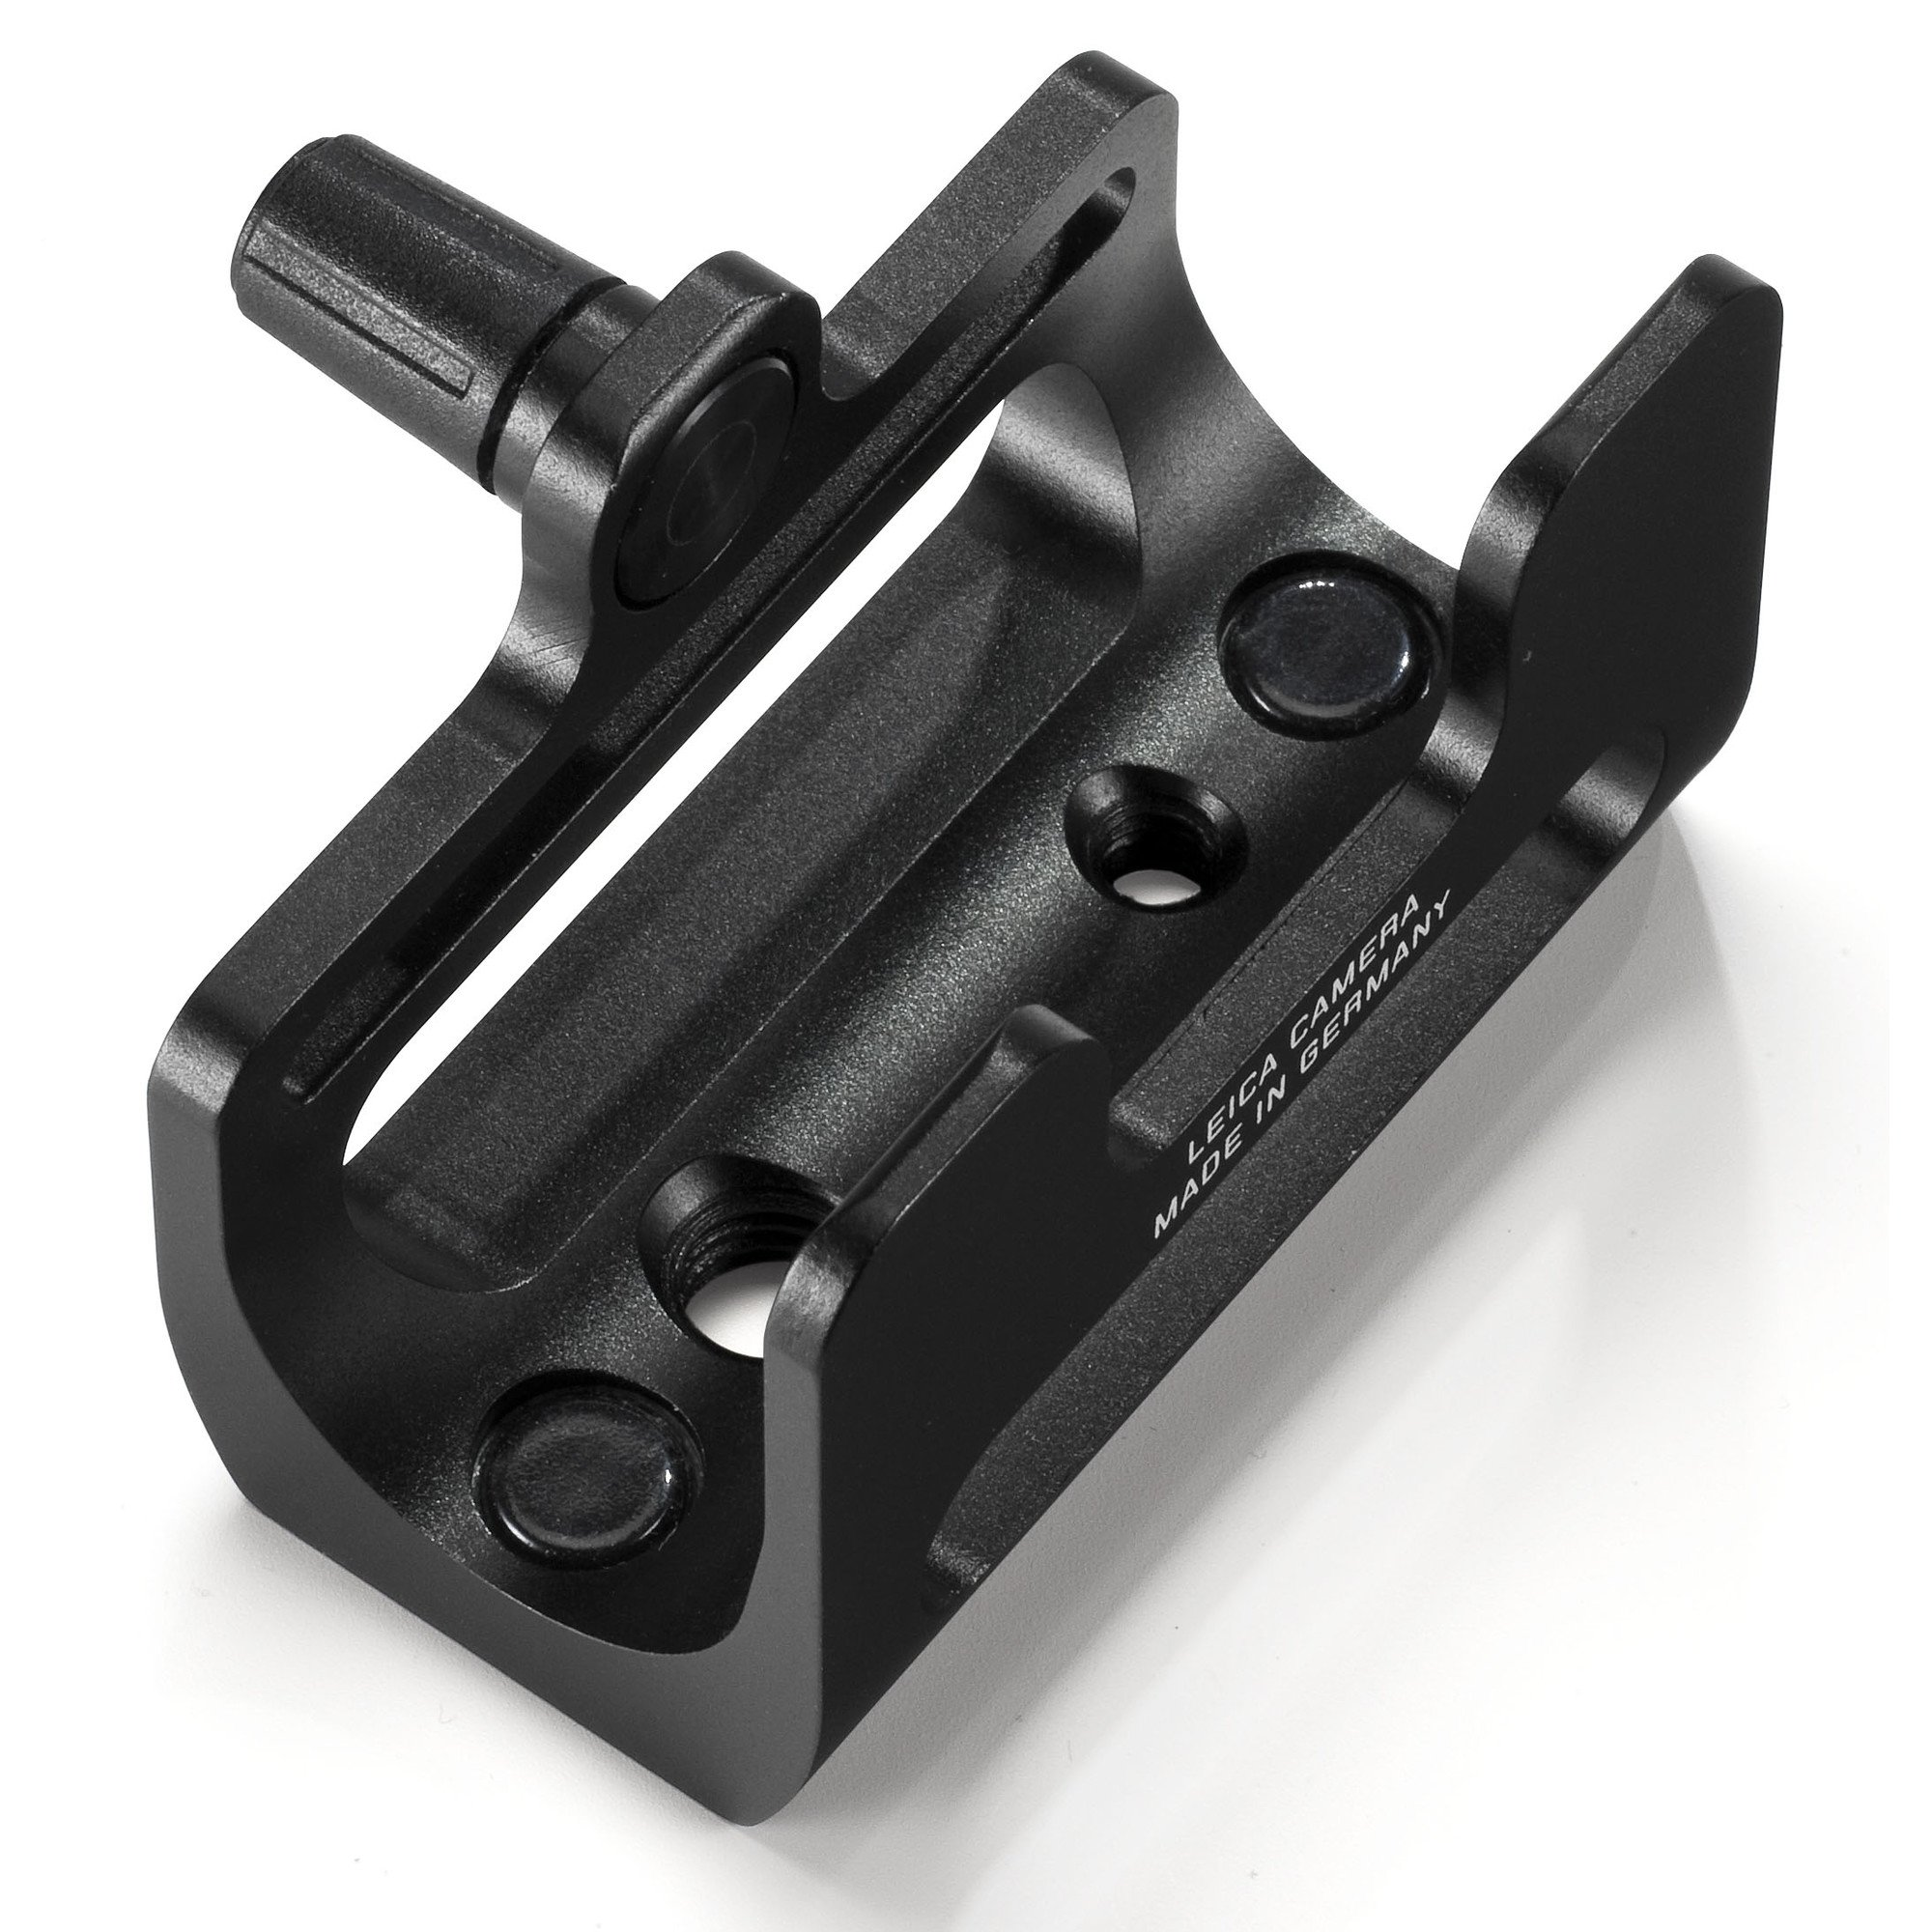 Leica Tripod Adapter for Rangemaster CRF by Leica (Image #1)